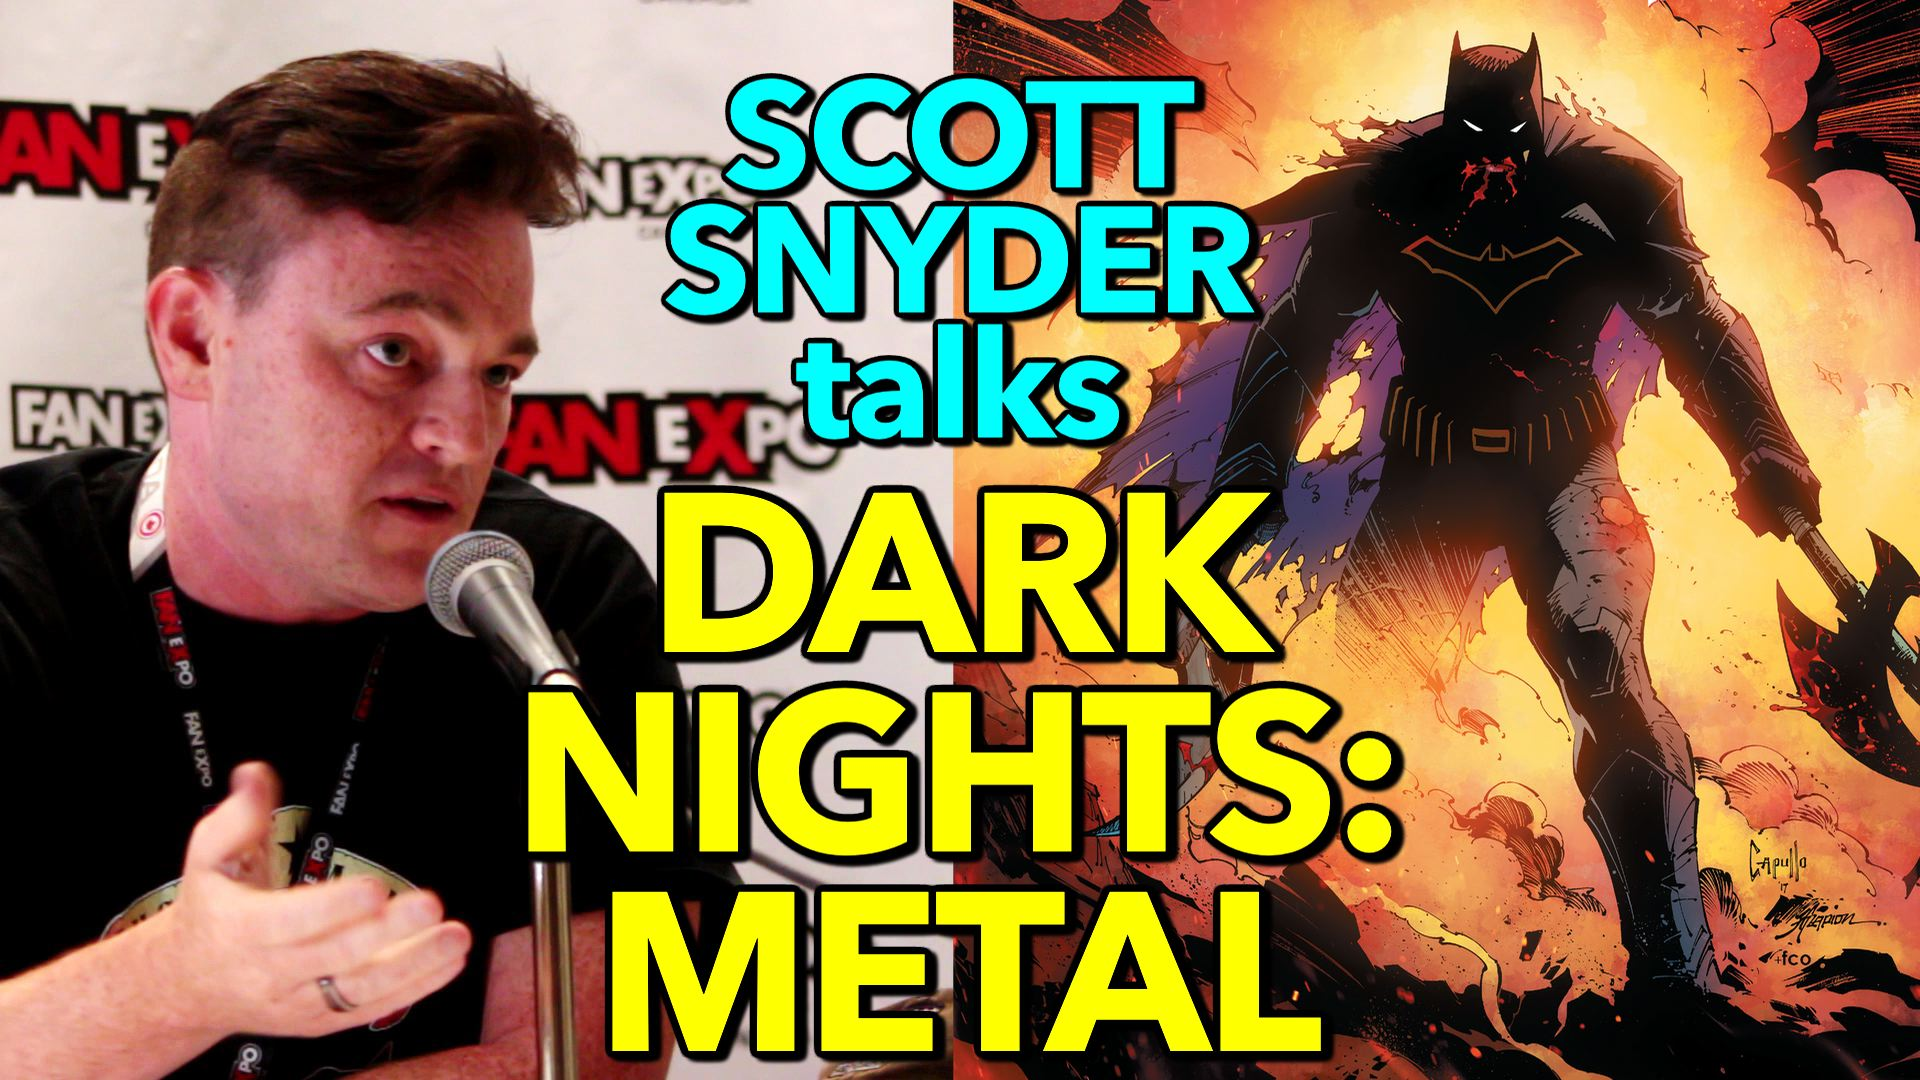 Scott Snyder talks DARK NIGHTS: METAL